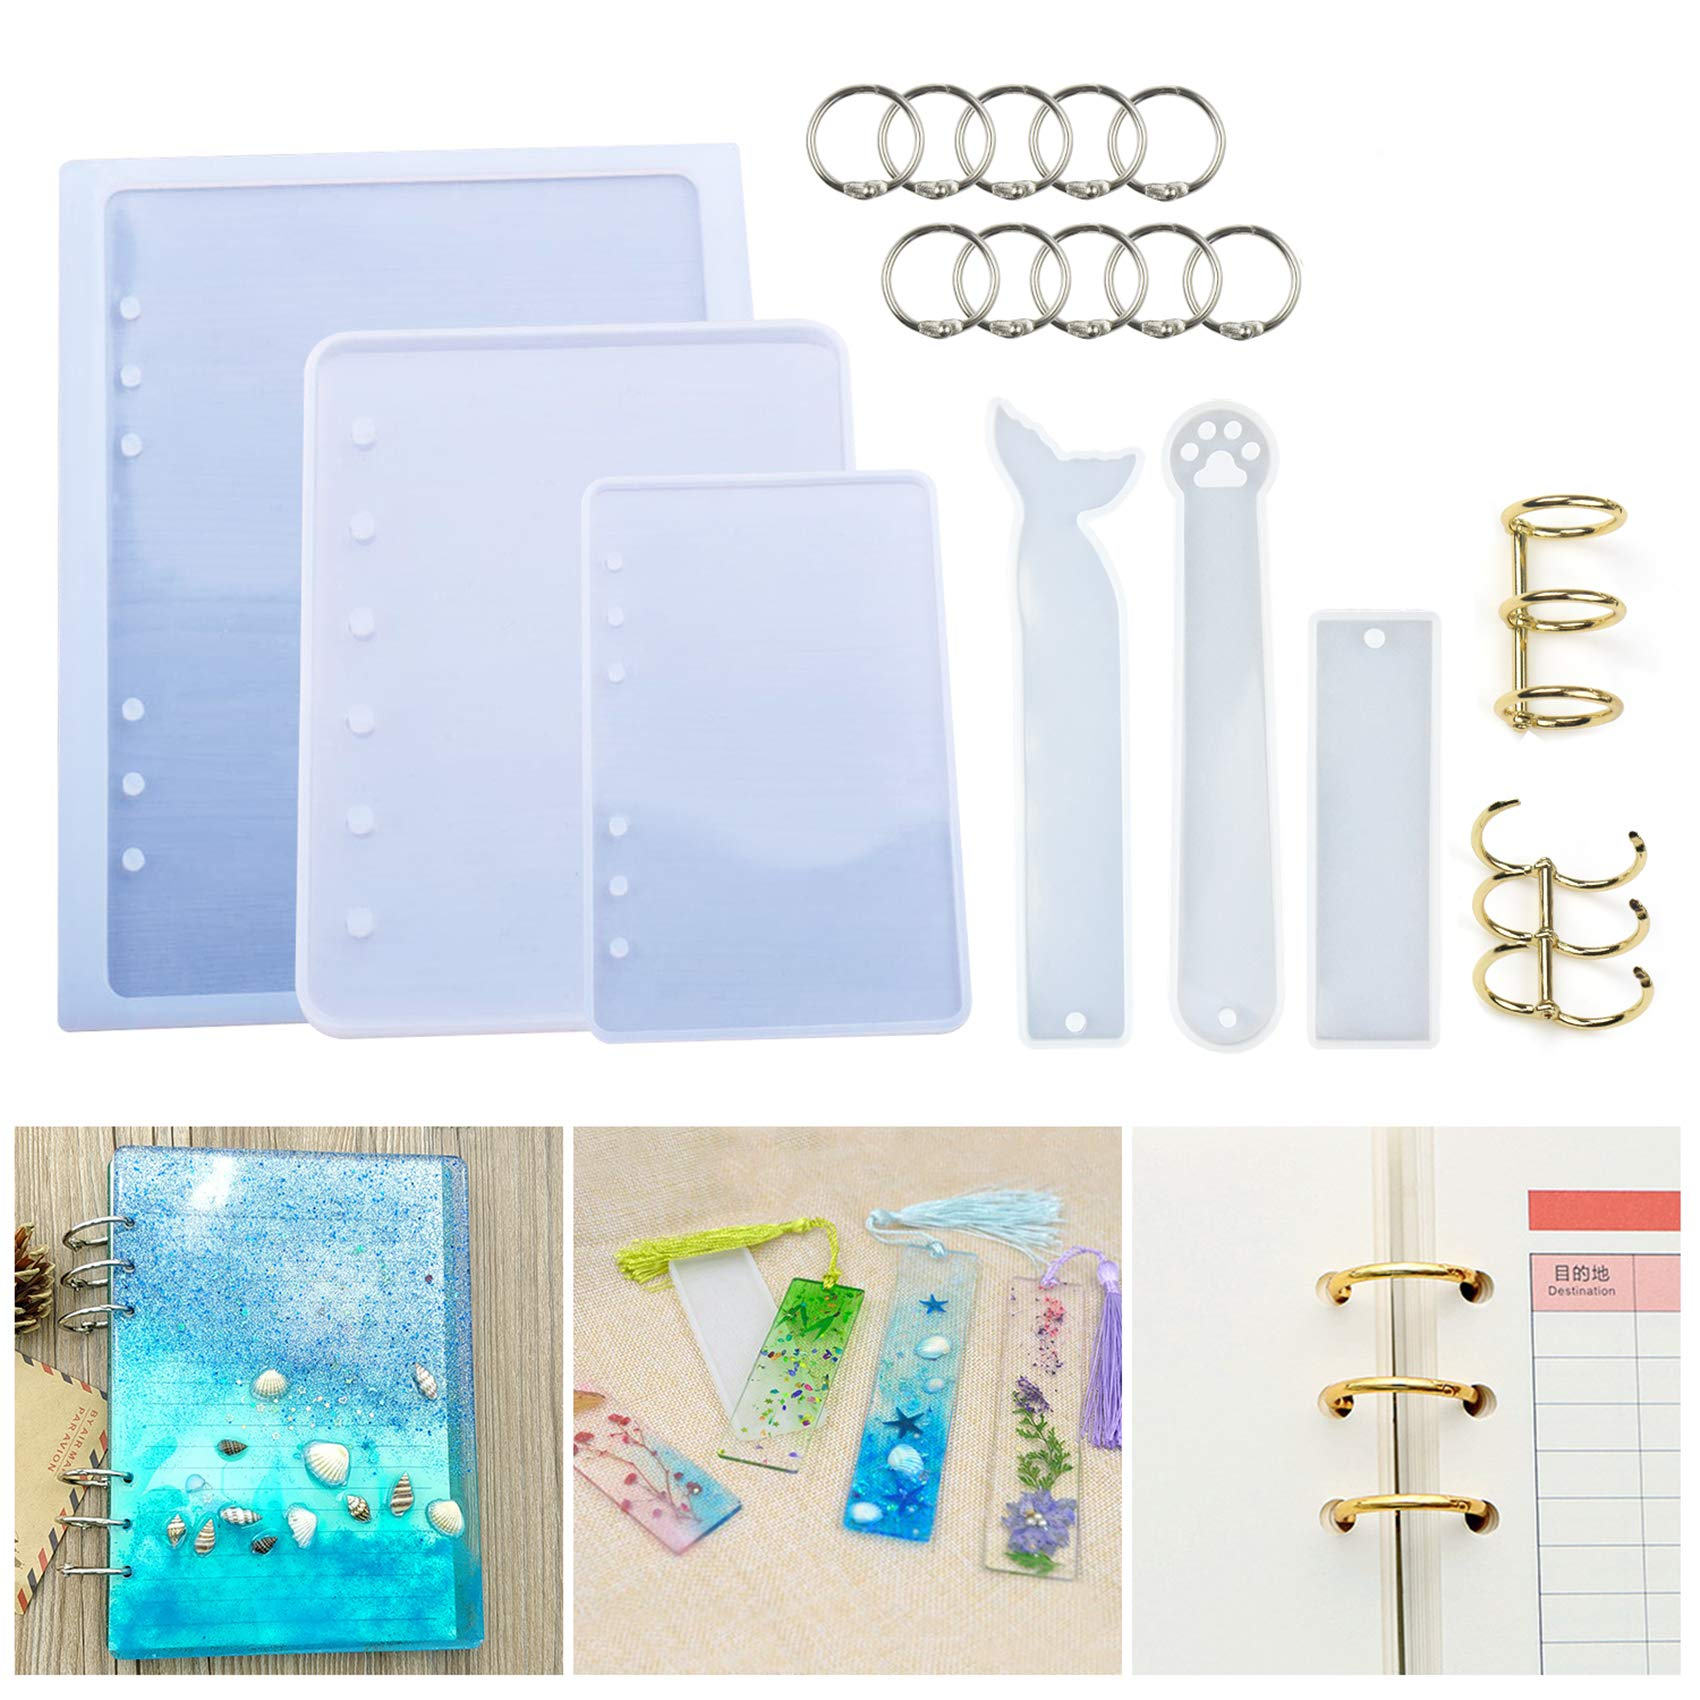 LET'S RESIN Resin Casting Molds for Notebook Cover A5 A6 A7, Silicone Bookmark Resin Molds 3PCS, Silicone Notebook Cover Clear Casting Epoxy Resin Molds with 14PCS Book Rings